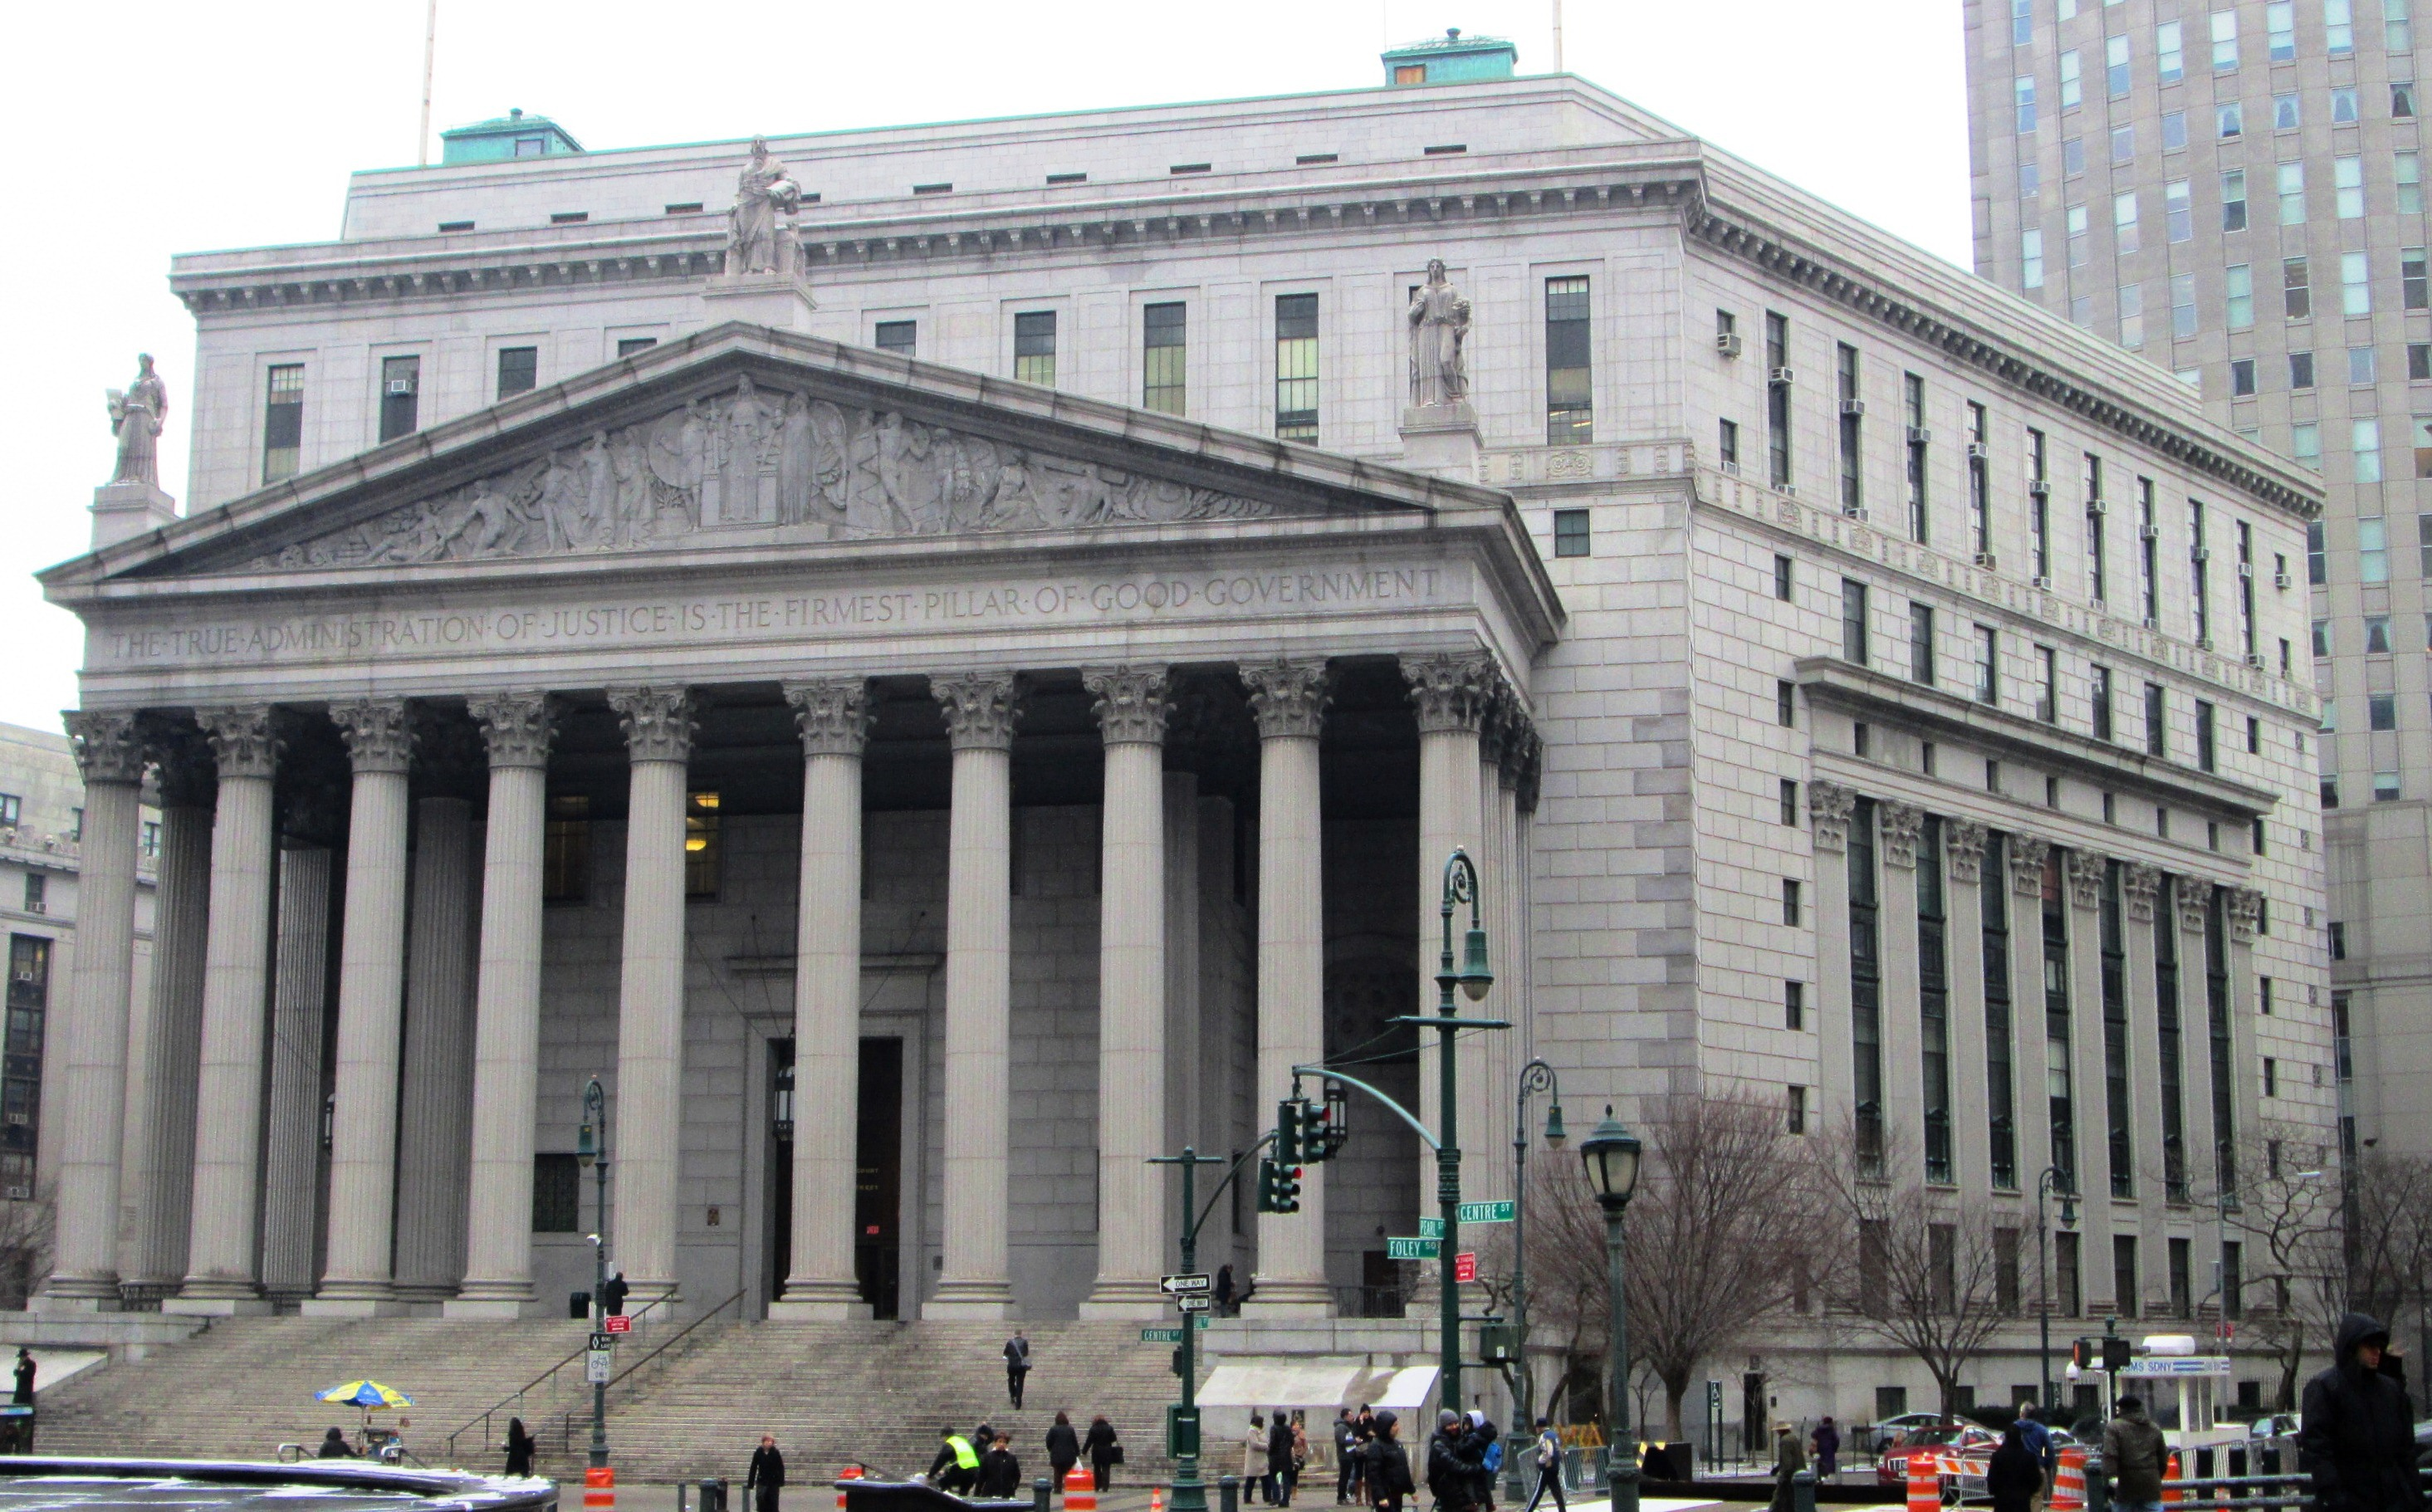 New_York_State_Supreme_Courthouse_60_Centre_Street_from_southwest